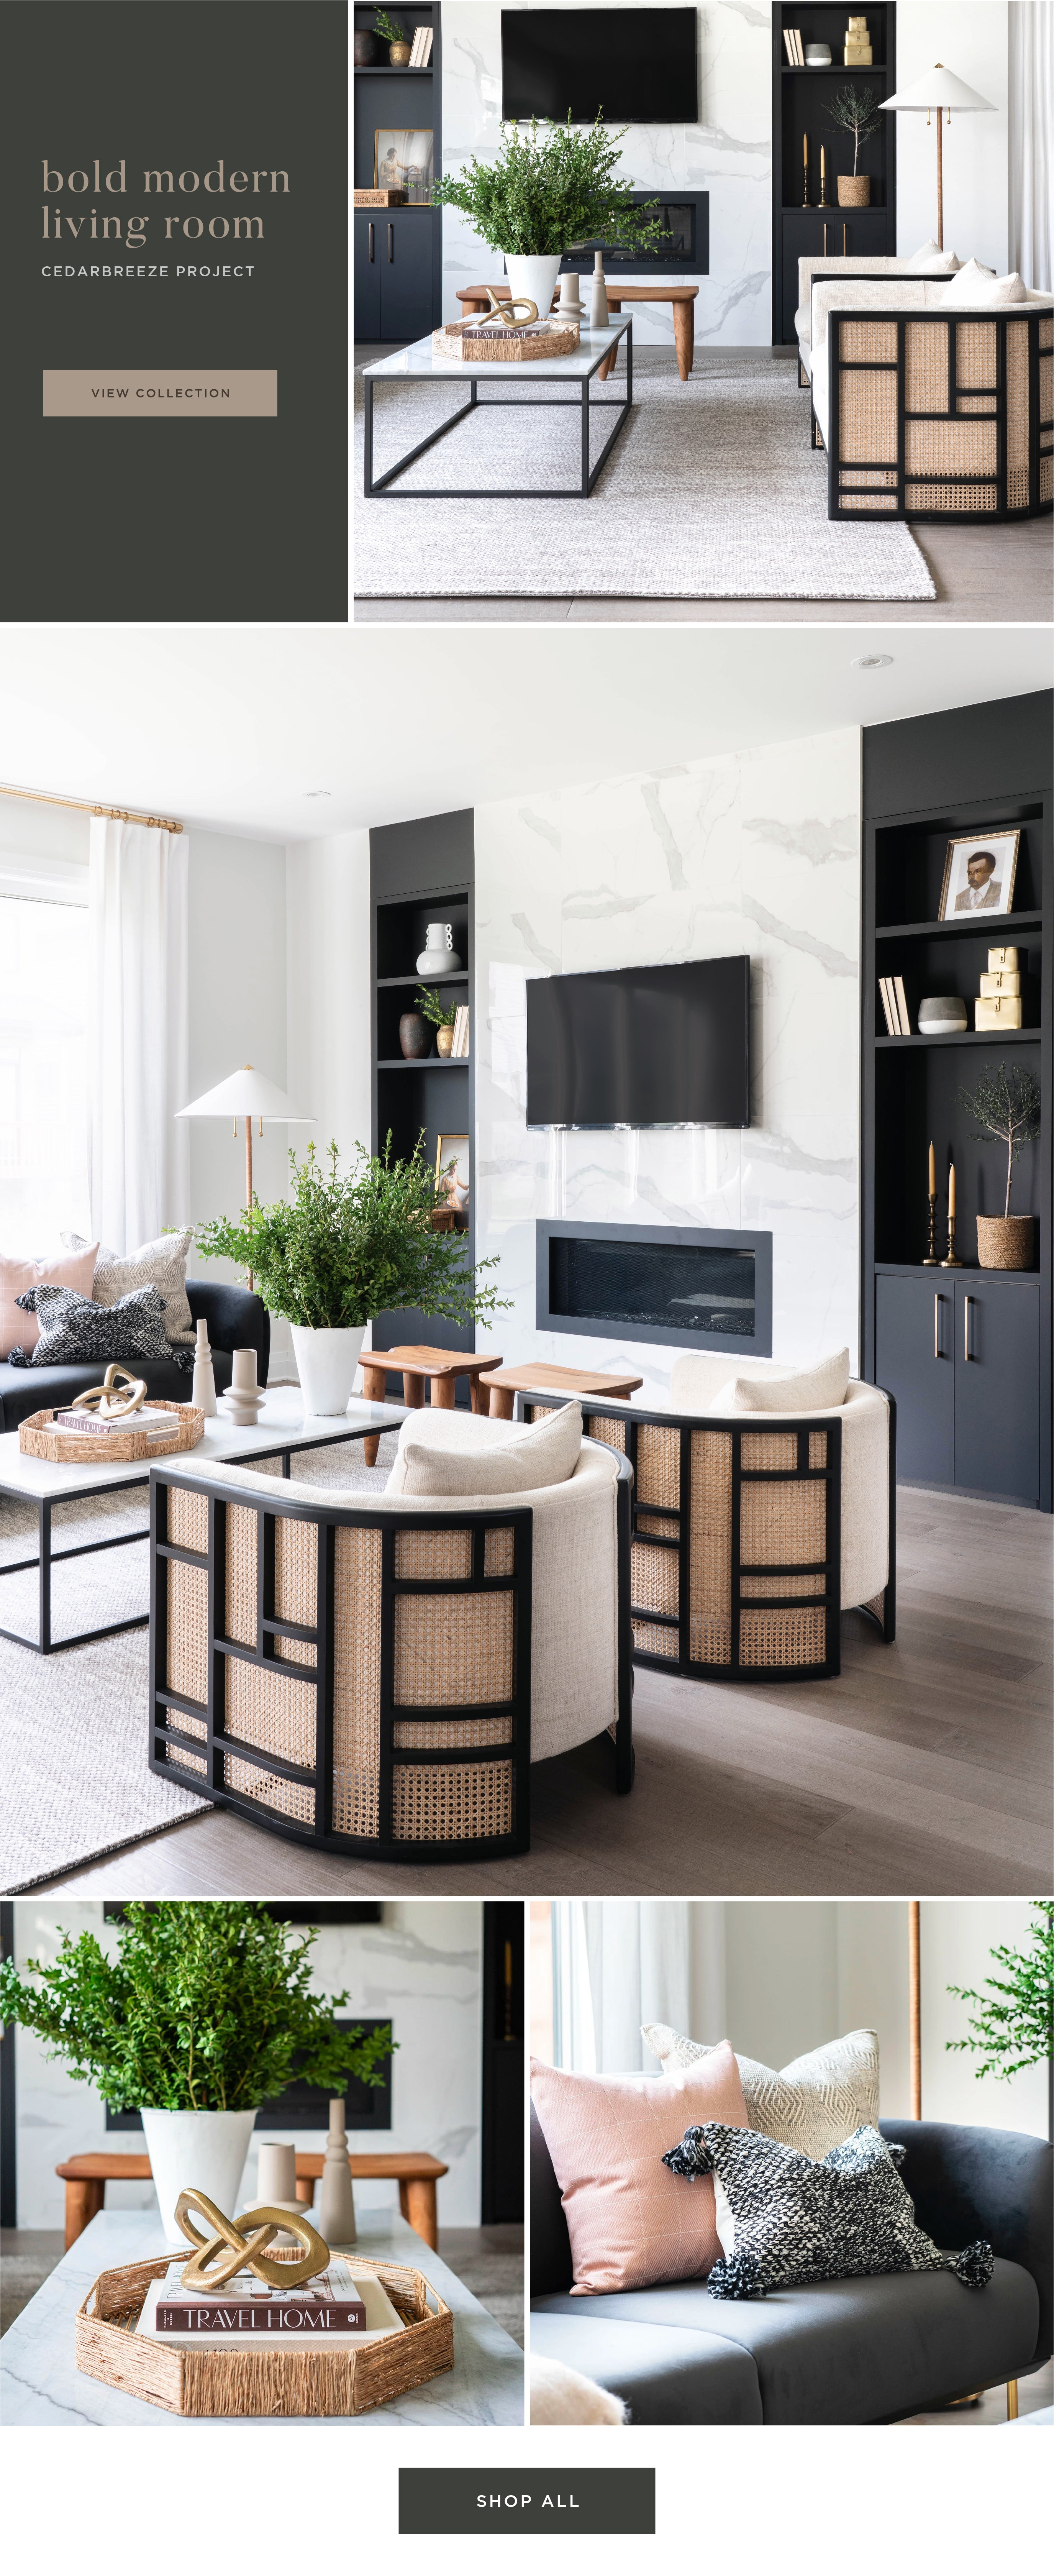 Shop the Look - Bold Modern Living Room